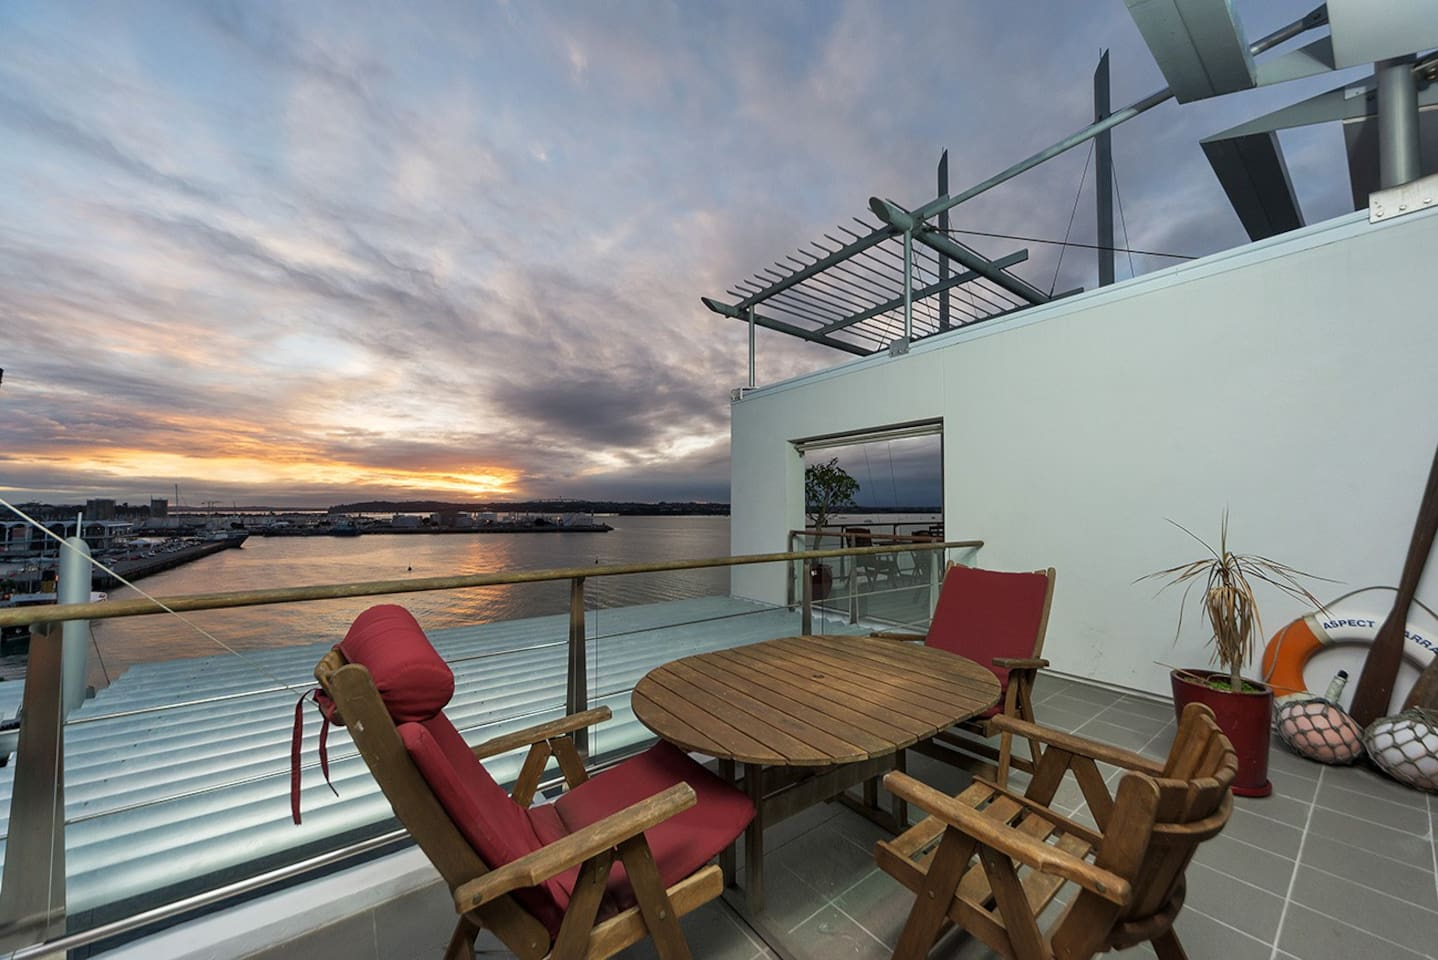 Sit on the deck and watch the sunset